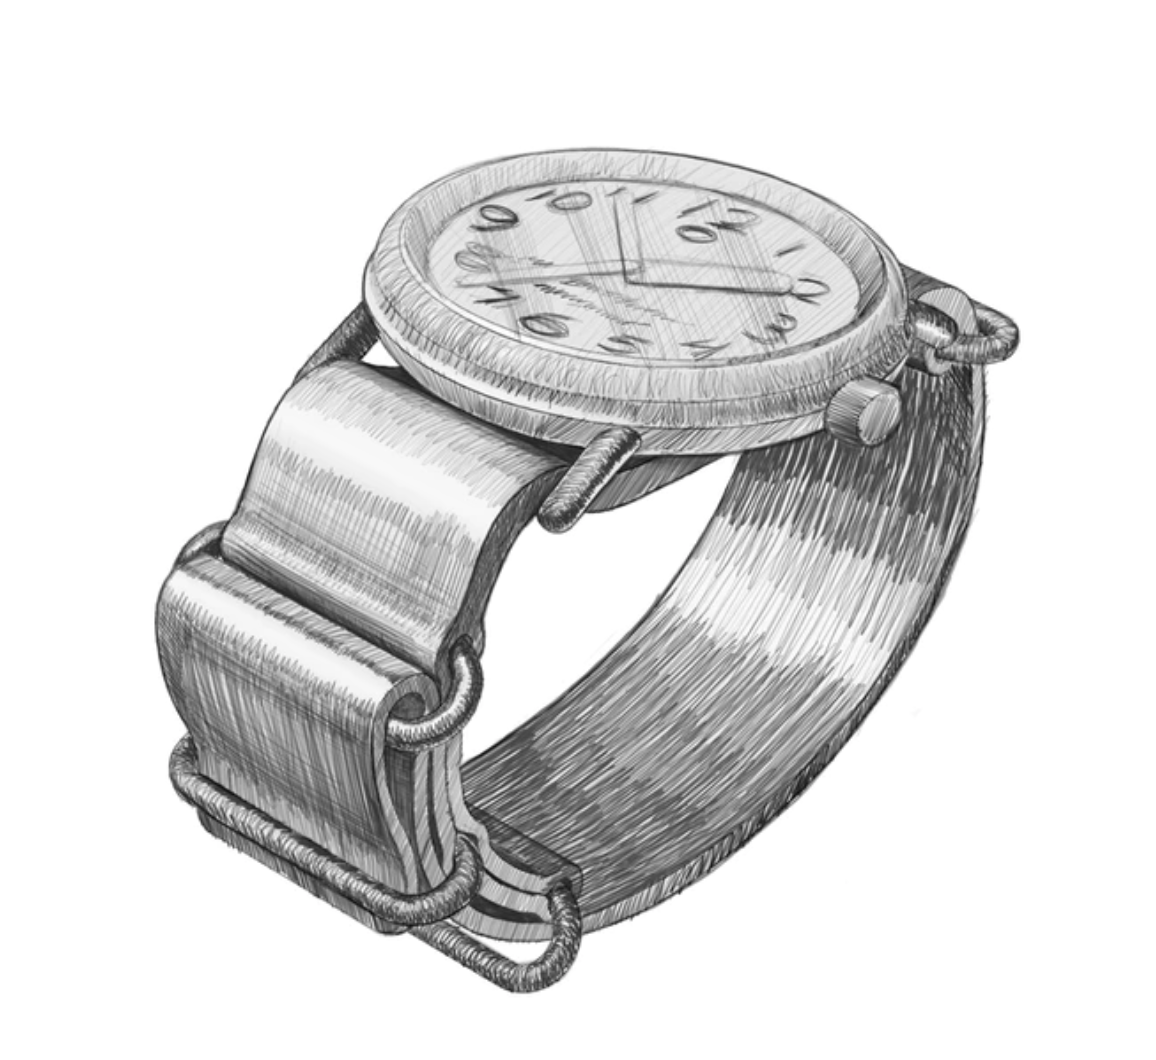 handdrawn sketch of watch prototype